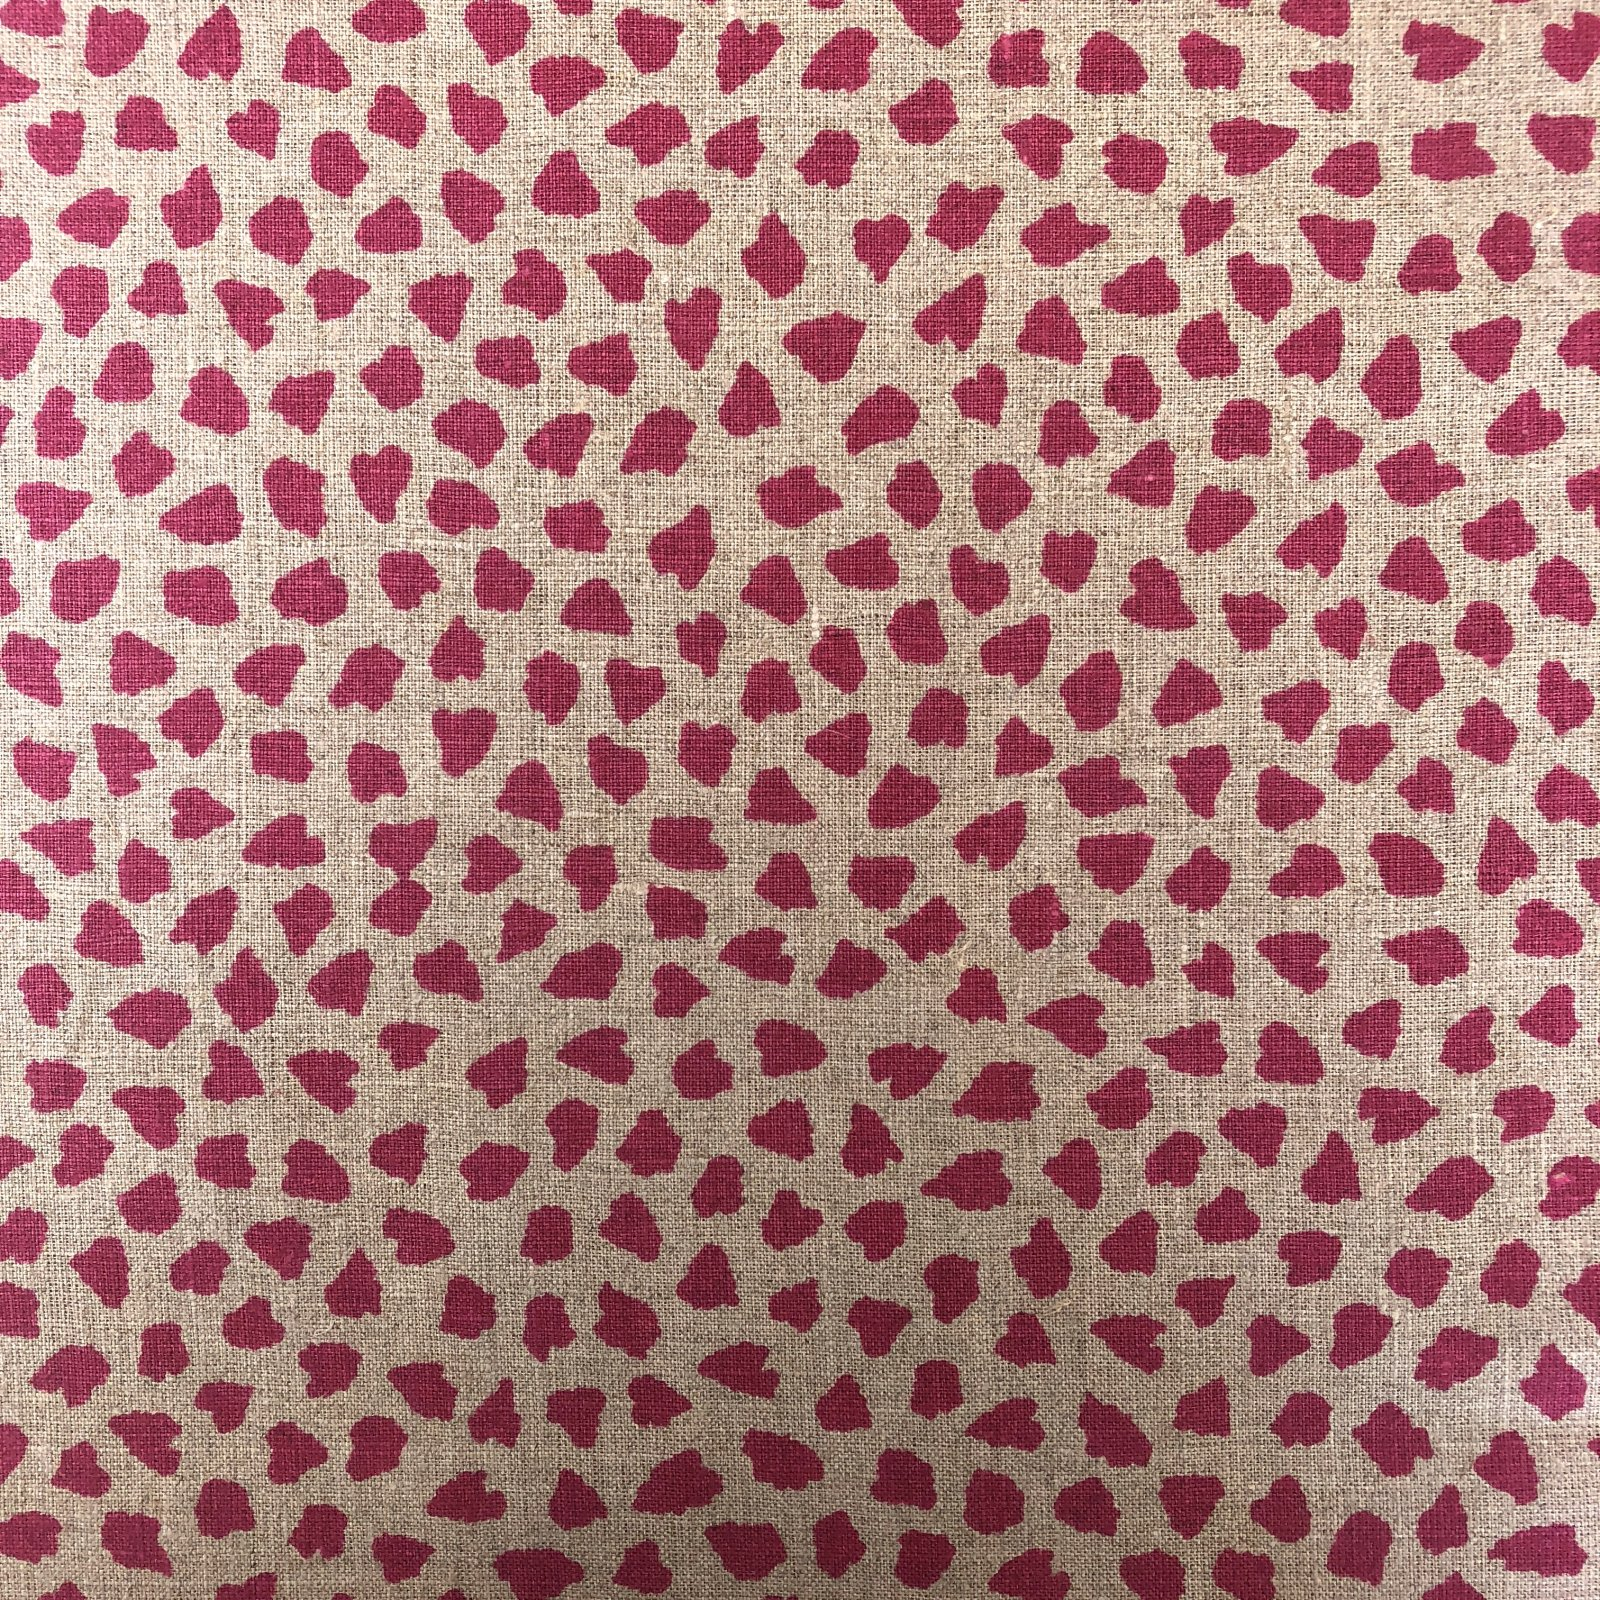 100% Linen - Spotted - Pink/Natural